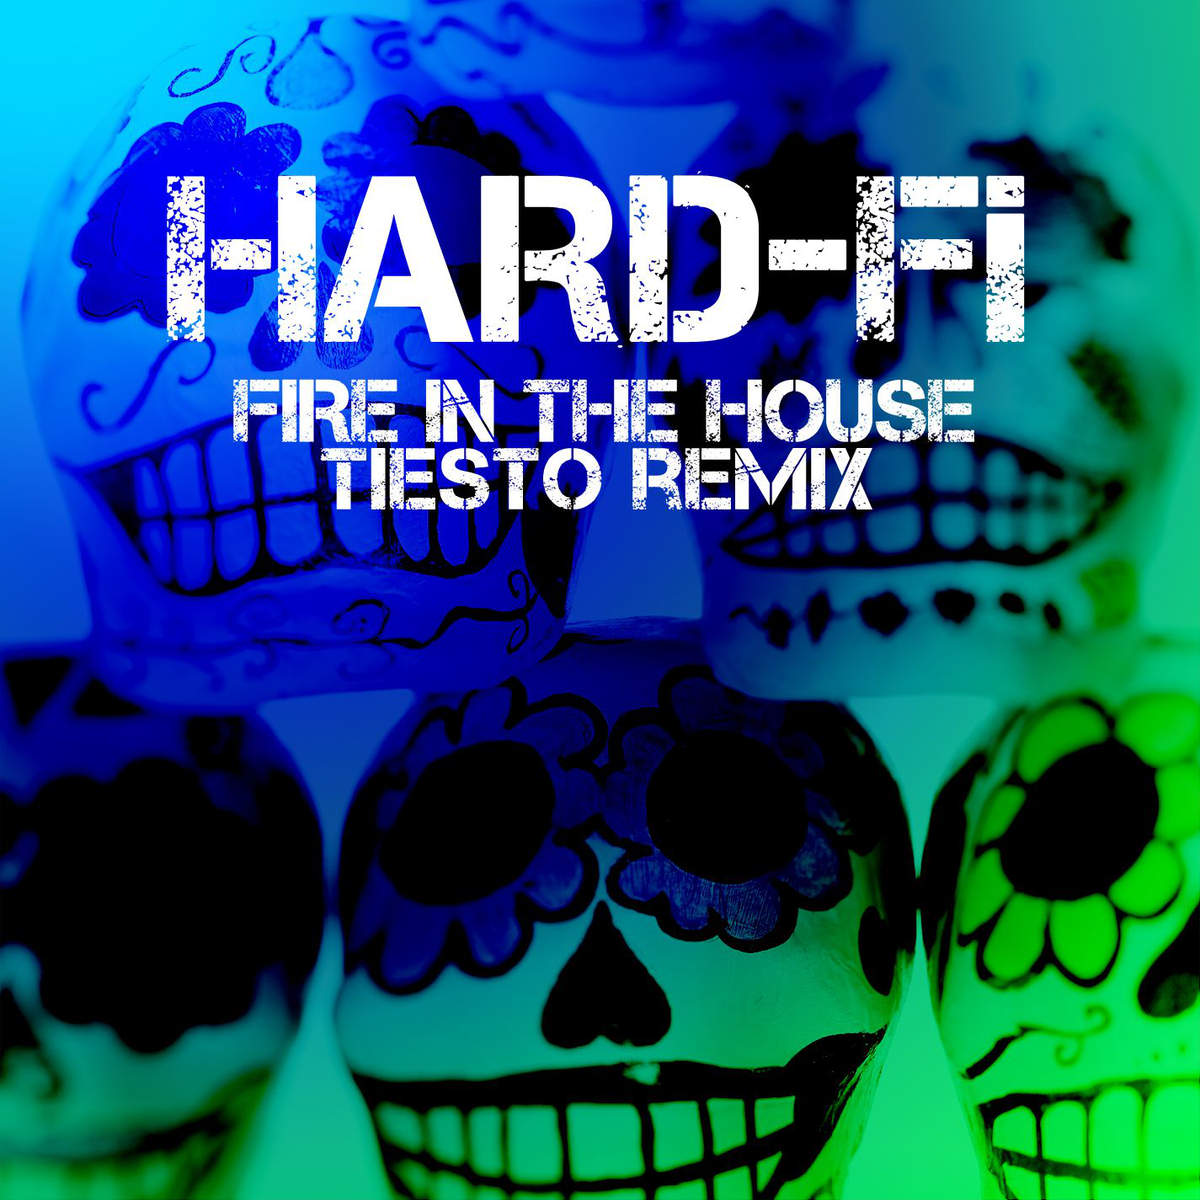 Hard fi fire in the house ti sto remix ti sto blog for House remixes of classic songs